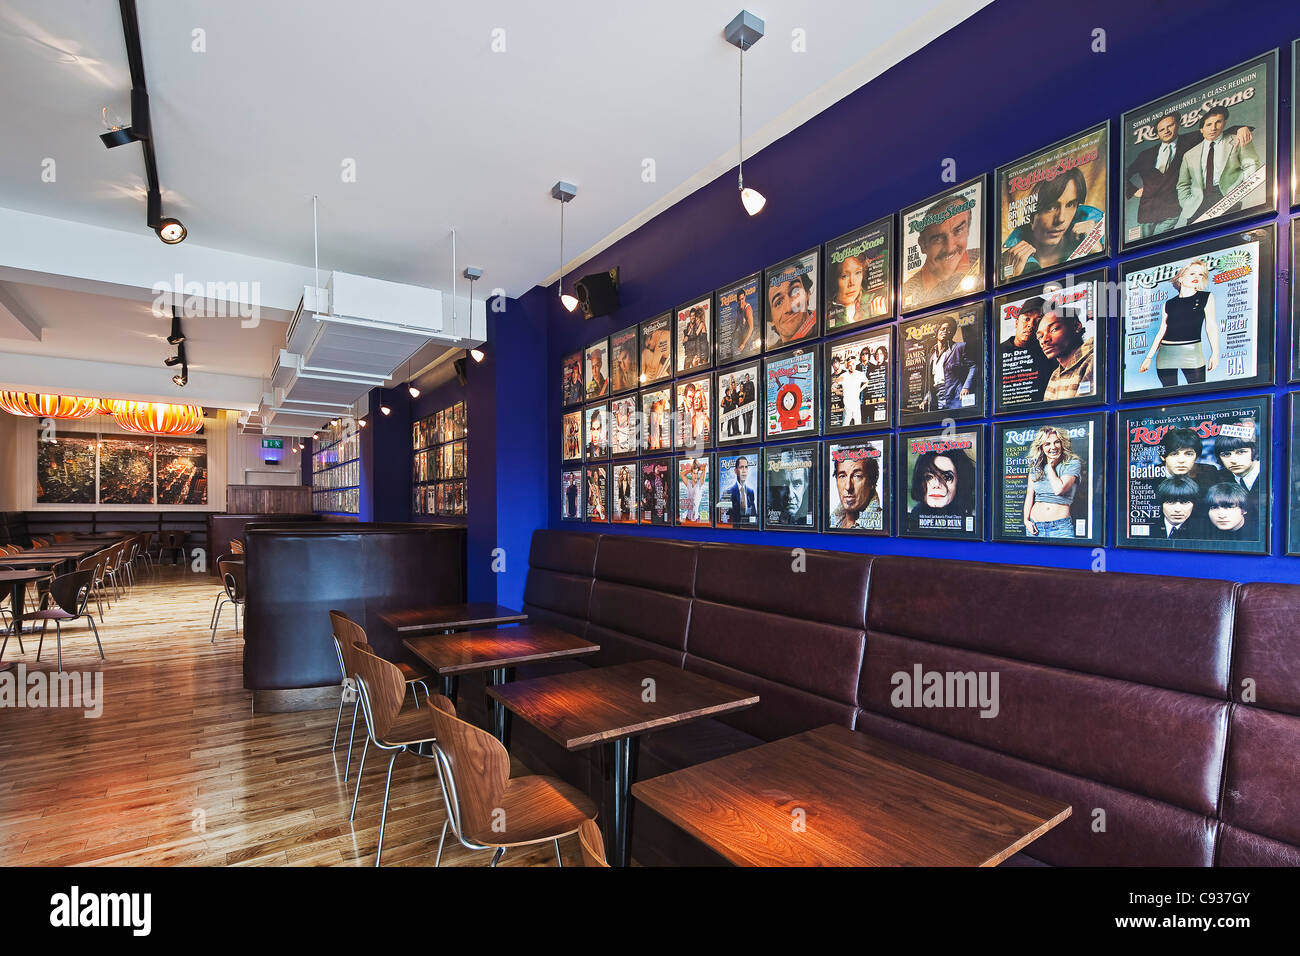 The interior of the Gotham South Restaurant and Cafe, Kilmacud Road Lower, Stillorgan, County Dublin, Ireland. - Stock Image